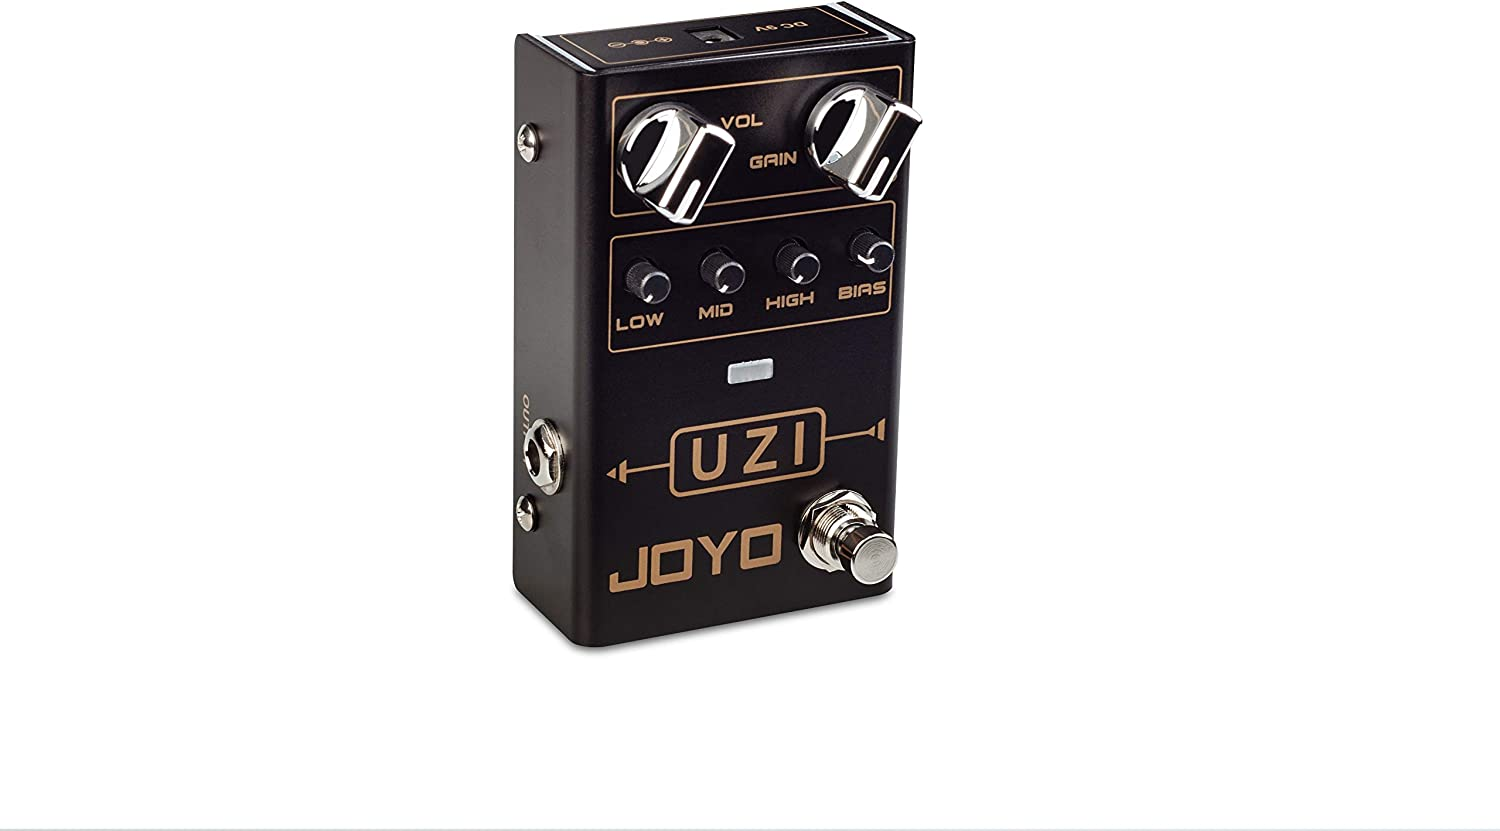 JOYO Professional Guitar Multi Effect Pedal Music Elevated By Cutting Edge Technology